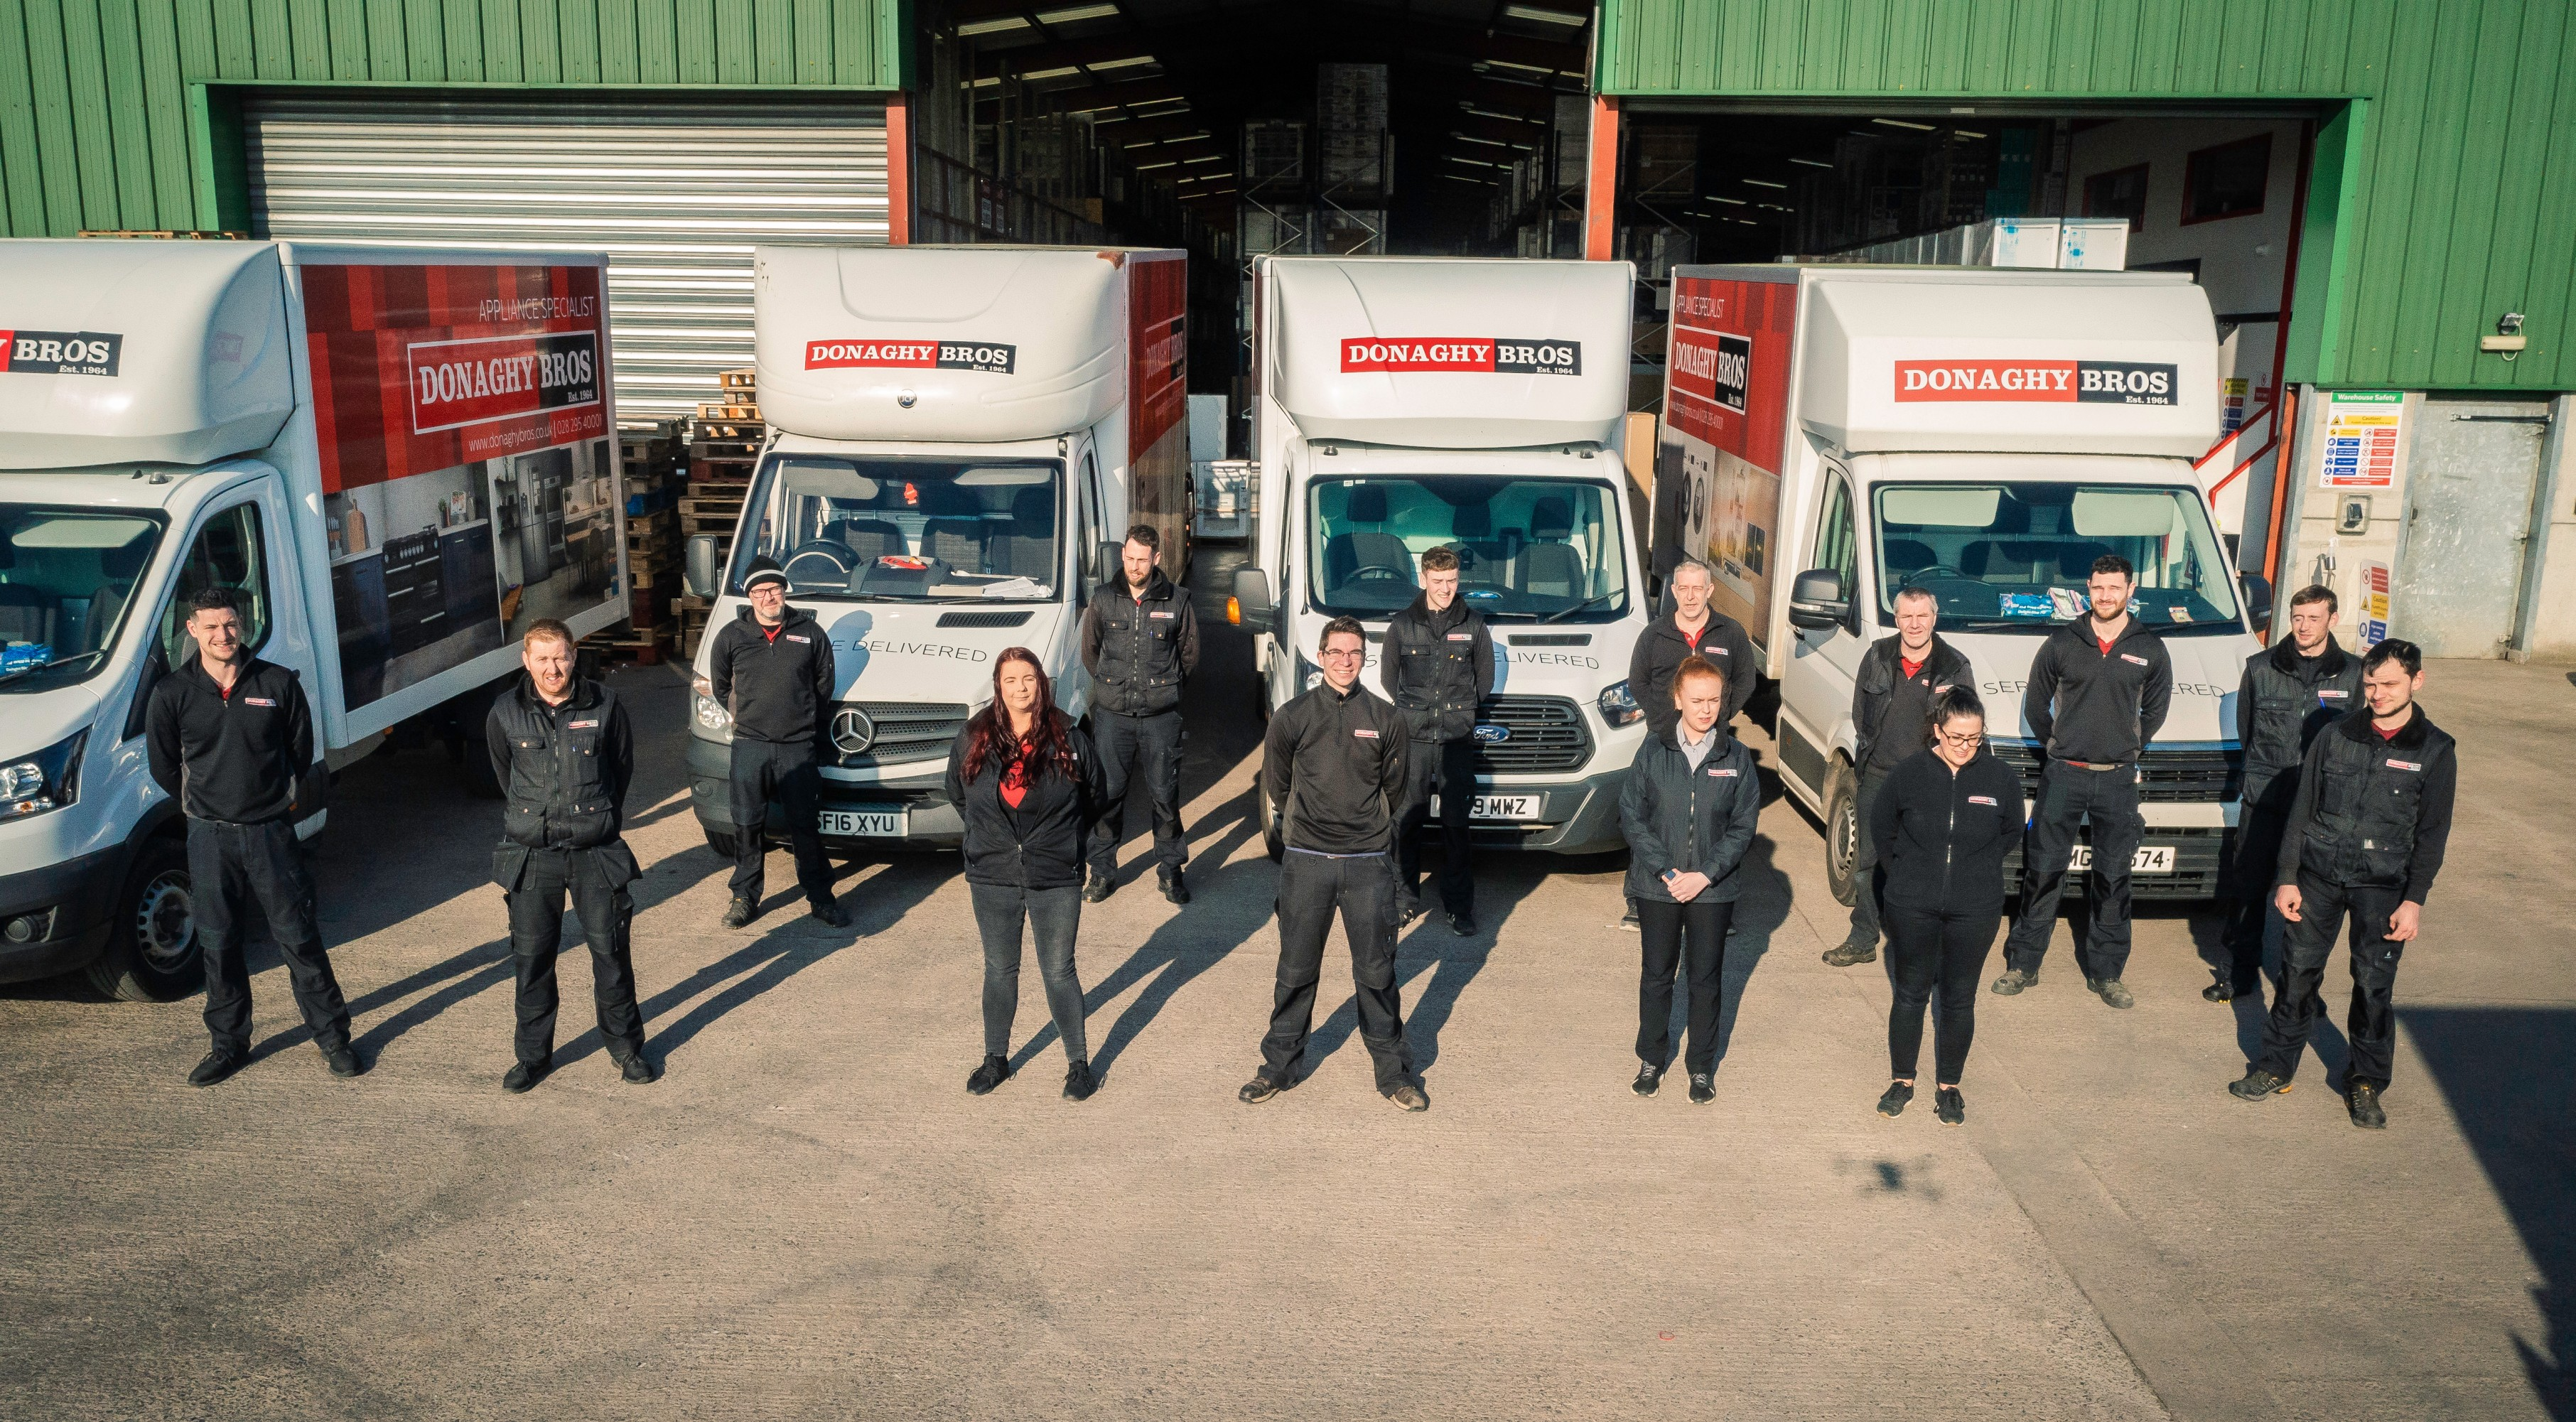 The Donaghy Bros Delivery and Warehouse Team